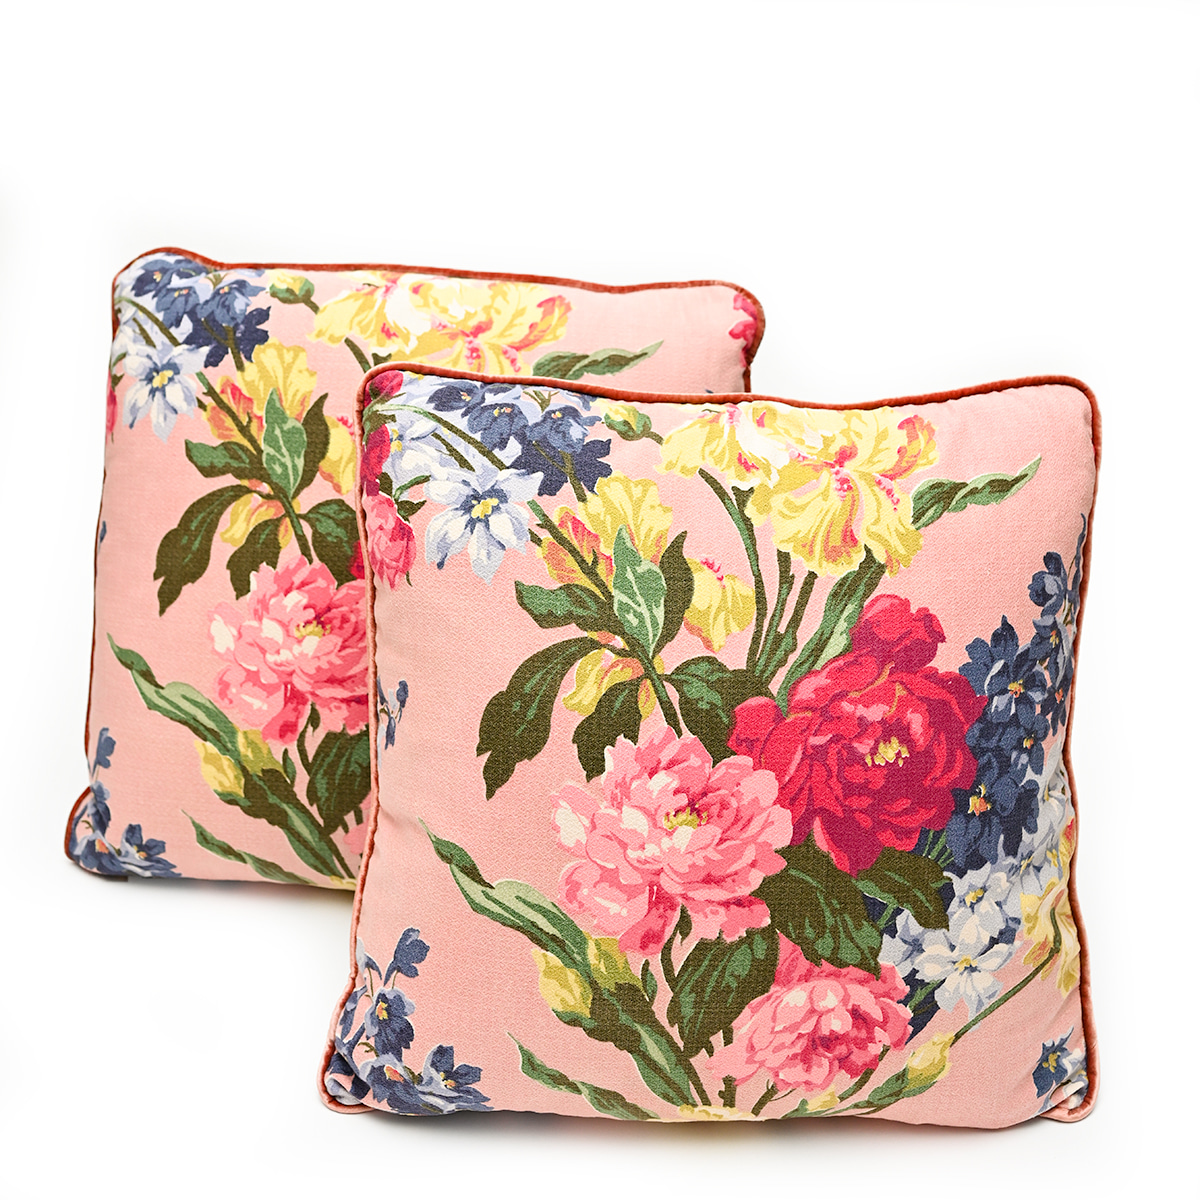 Barkcloth Pillow Pair – Floral motif on Pink